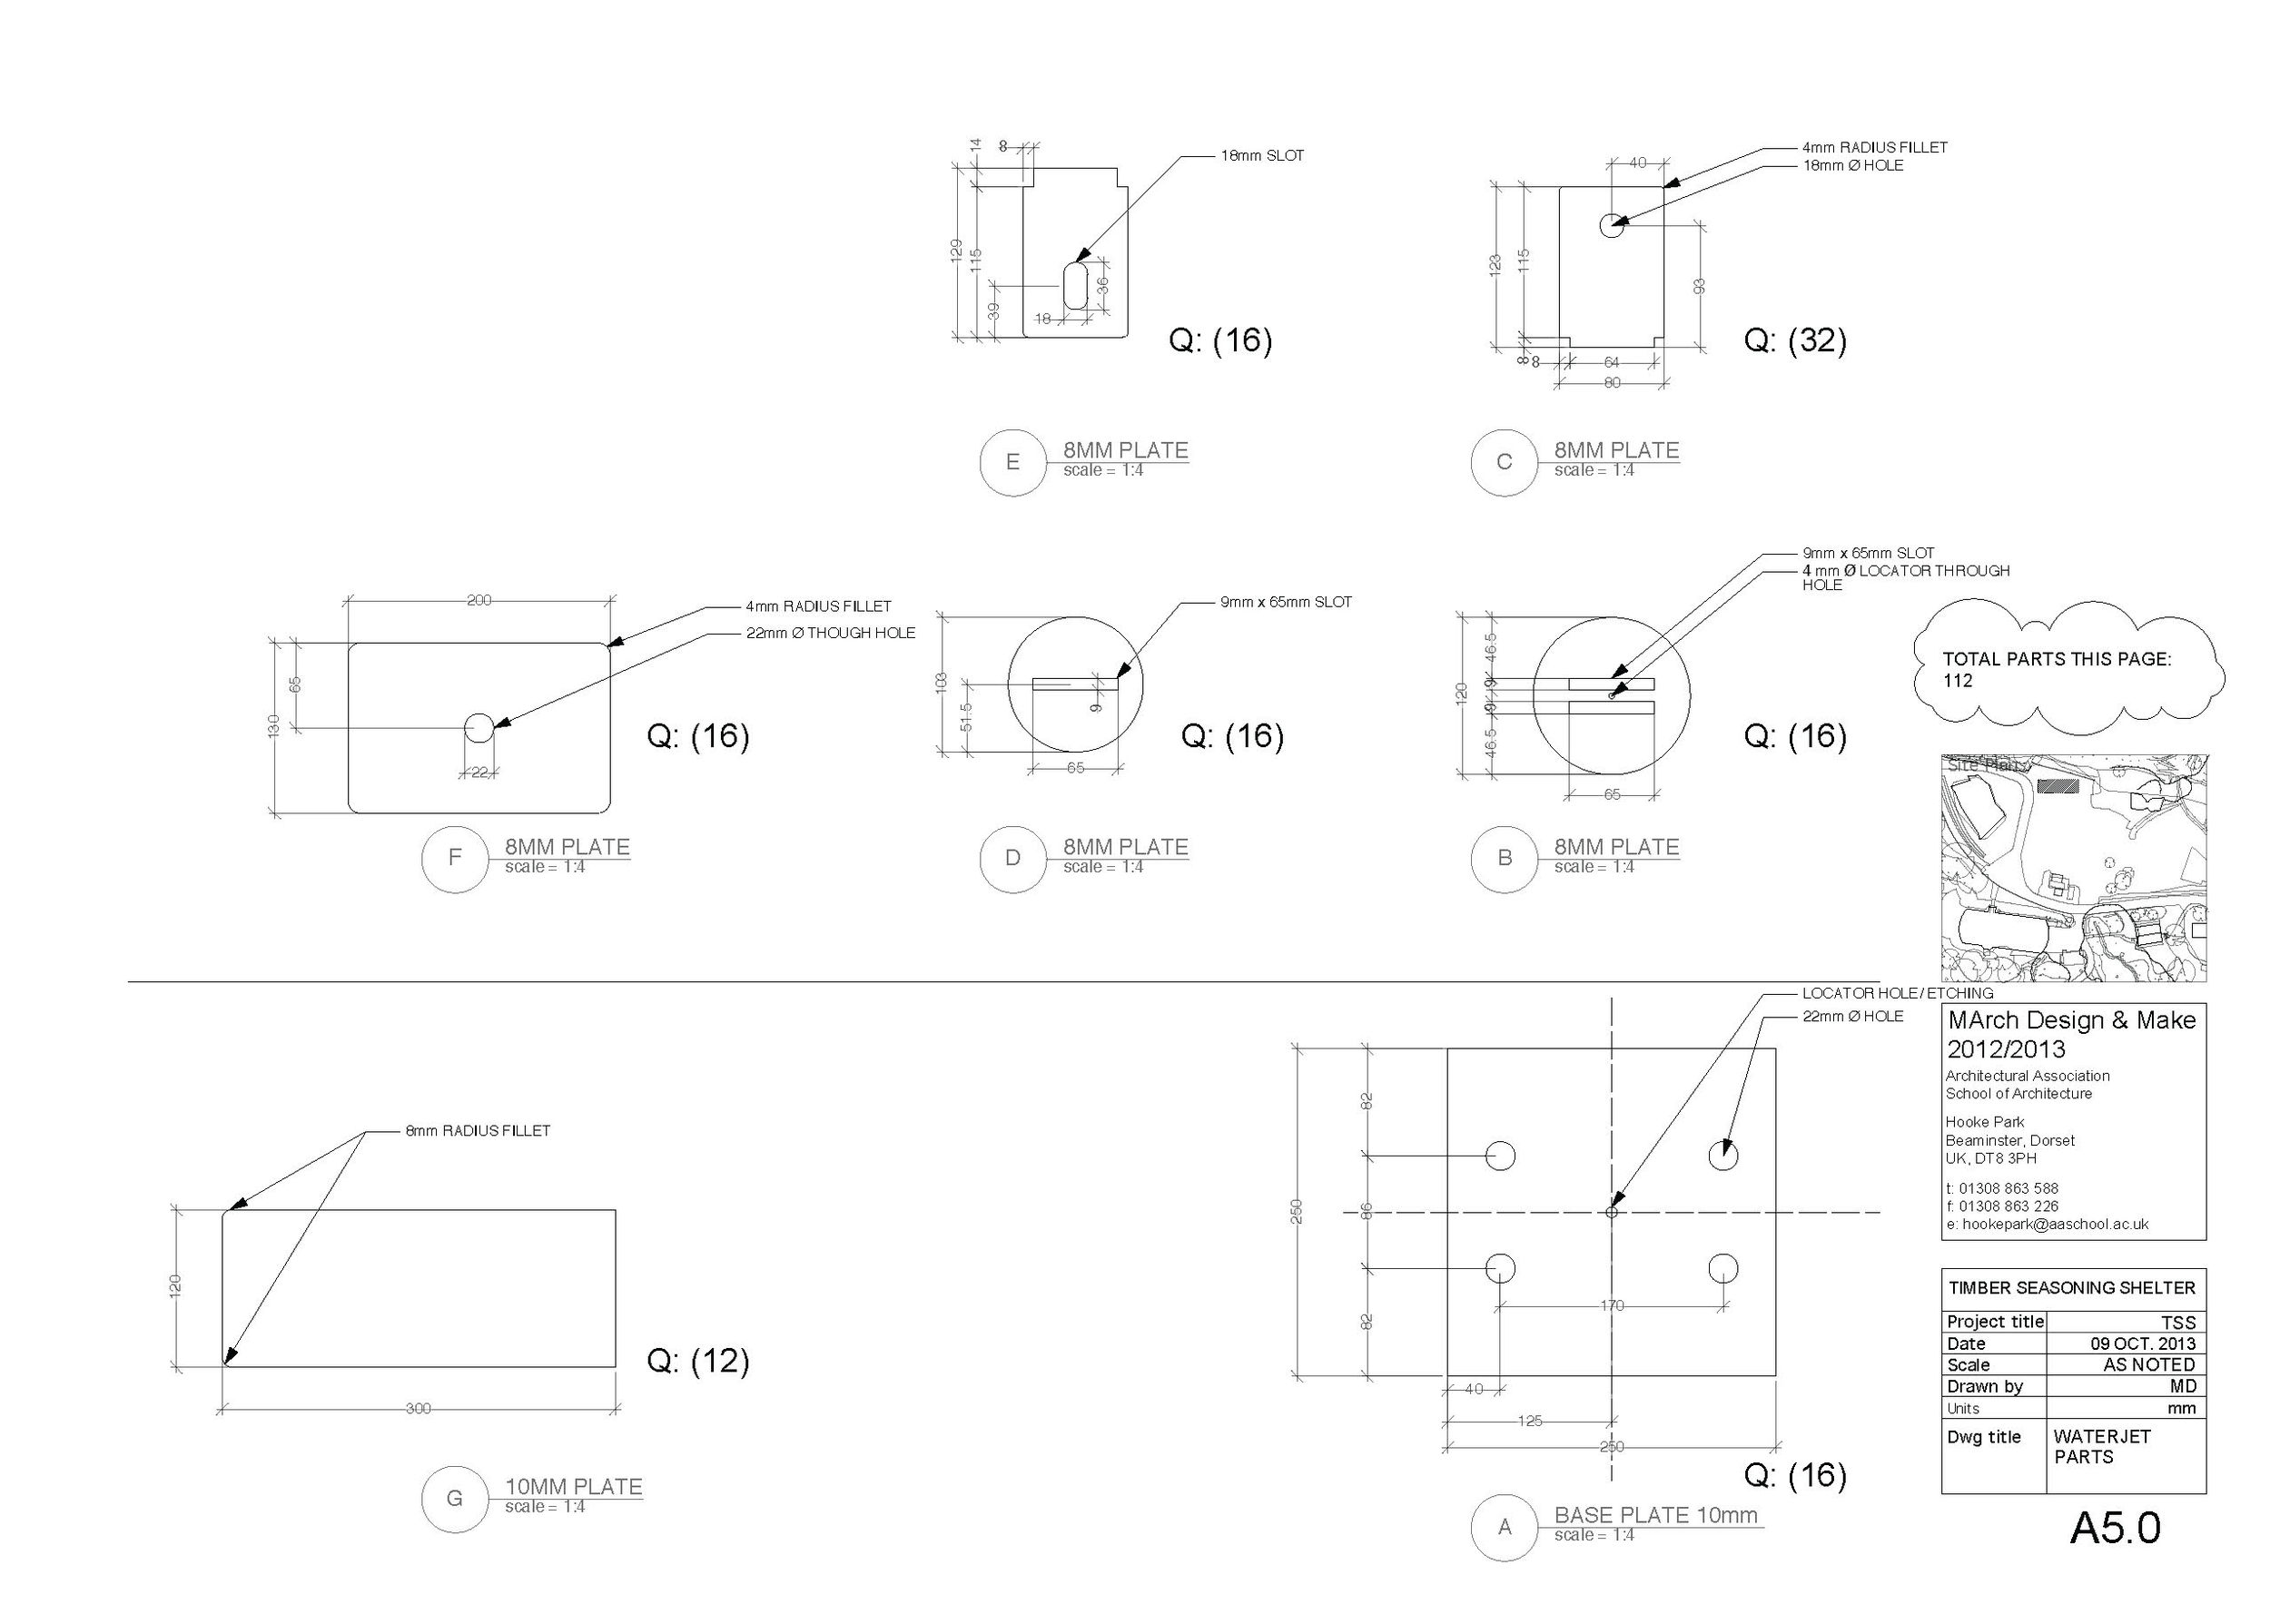 131014 TSS COLUMN AND BASE PLATE DETAILS FOR APPROVAL_Page_6.jpg